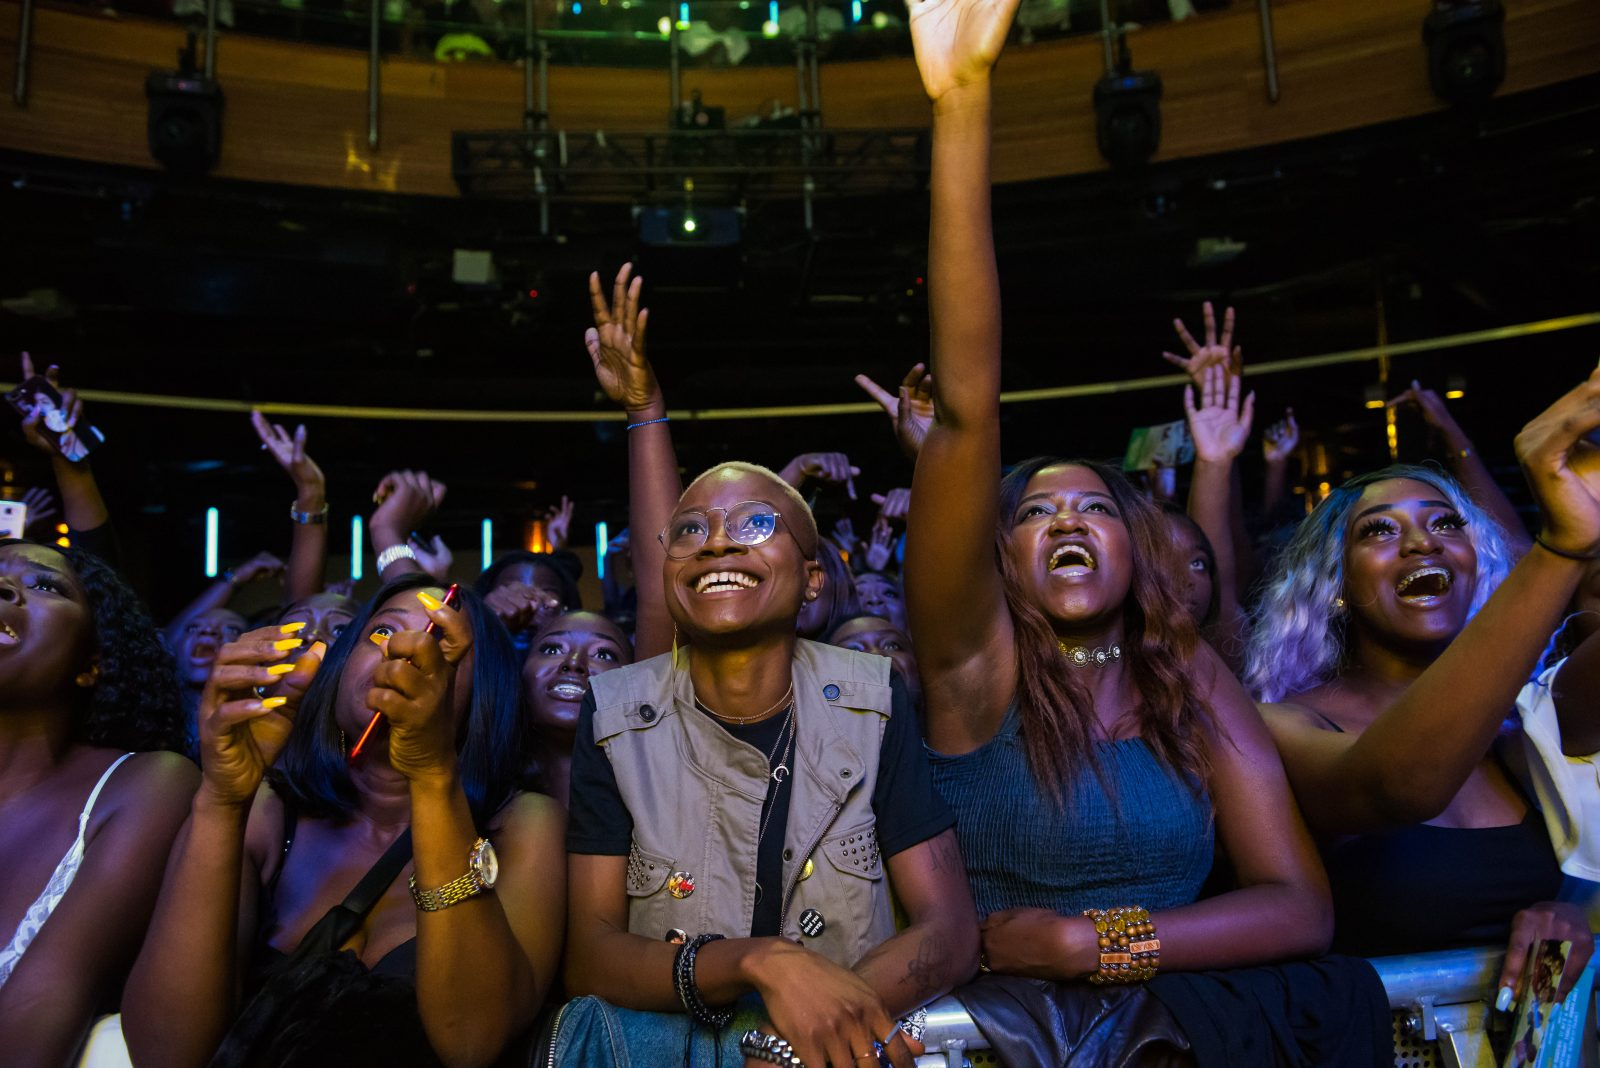 Indigo at The O2, London, United Kingdom. 24th August 2018. Fans reaction to Tiwa Savage's performance during her First solo concert at indigo O2.